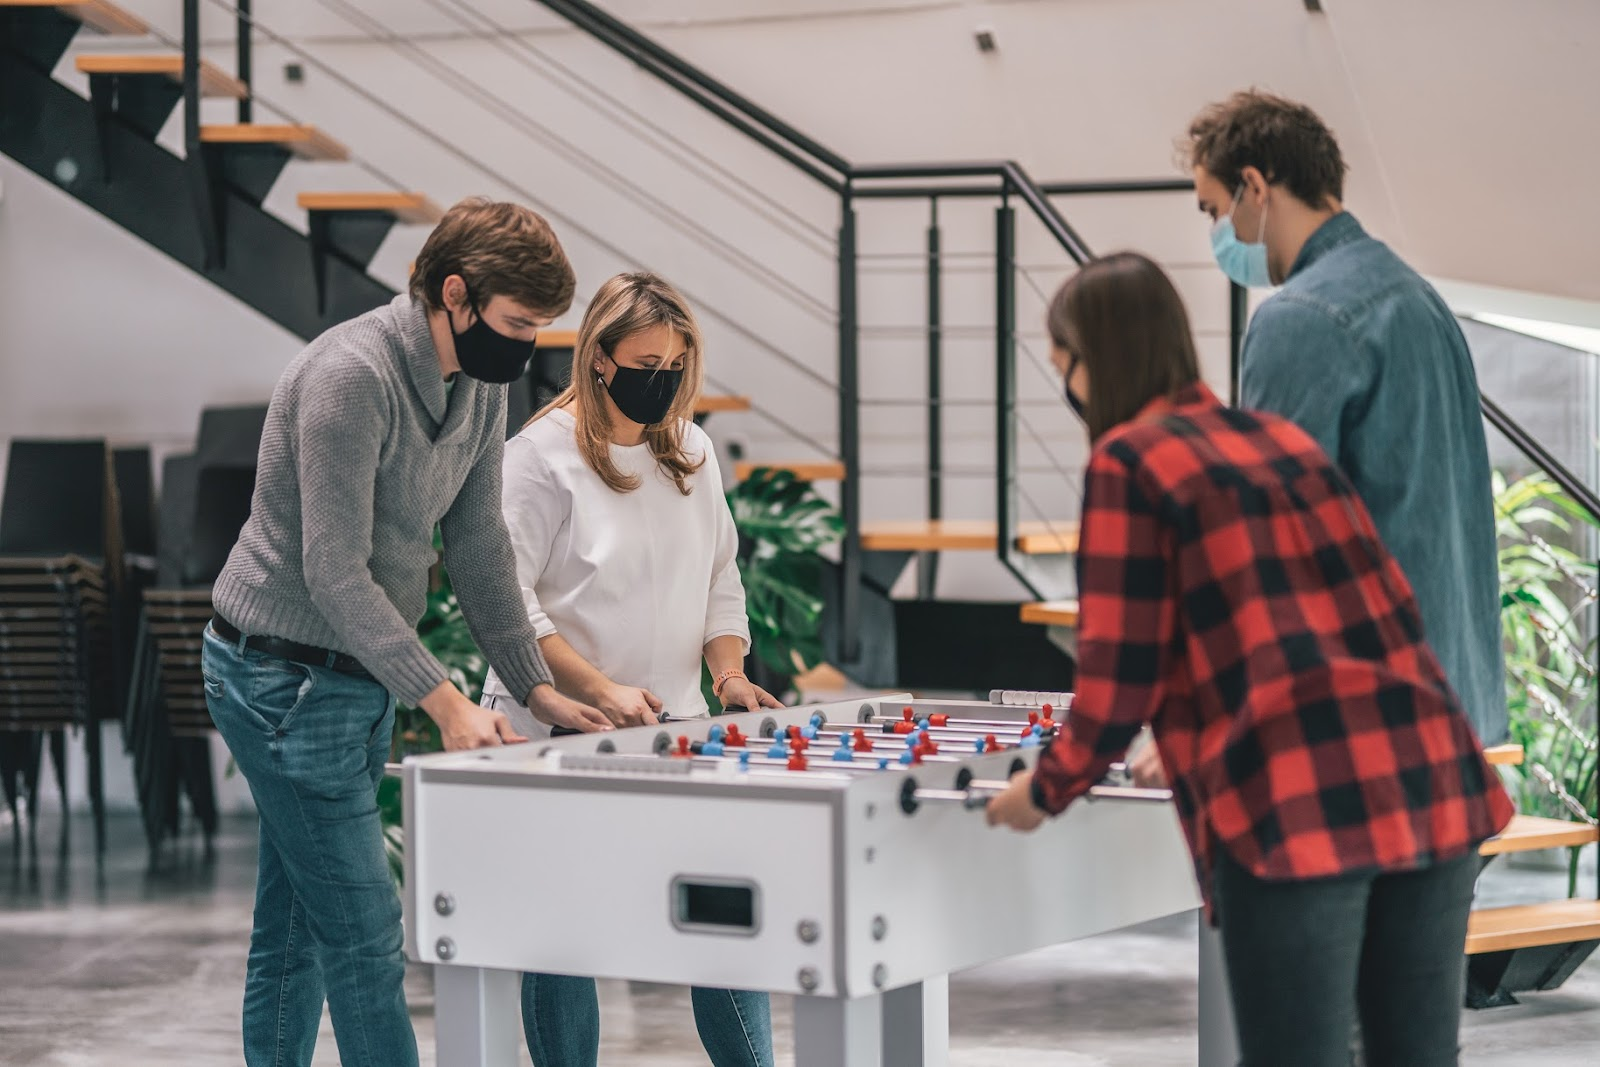 Office workers playing table football